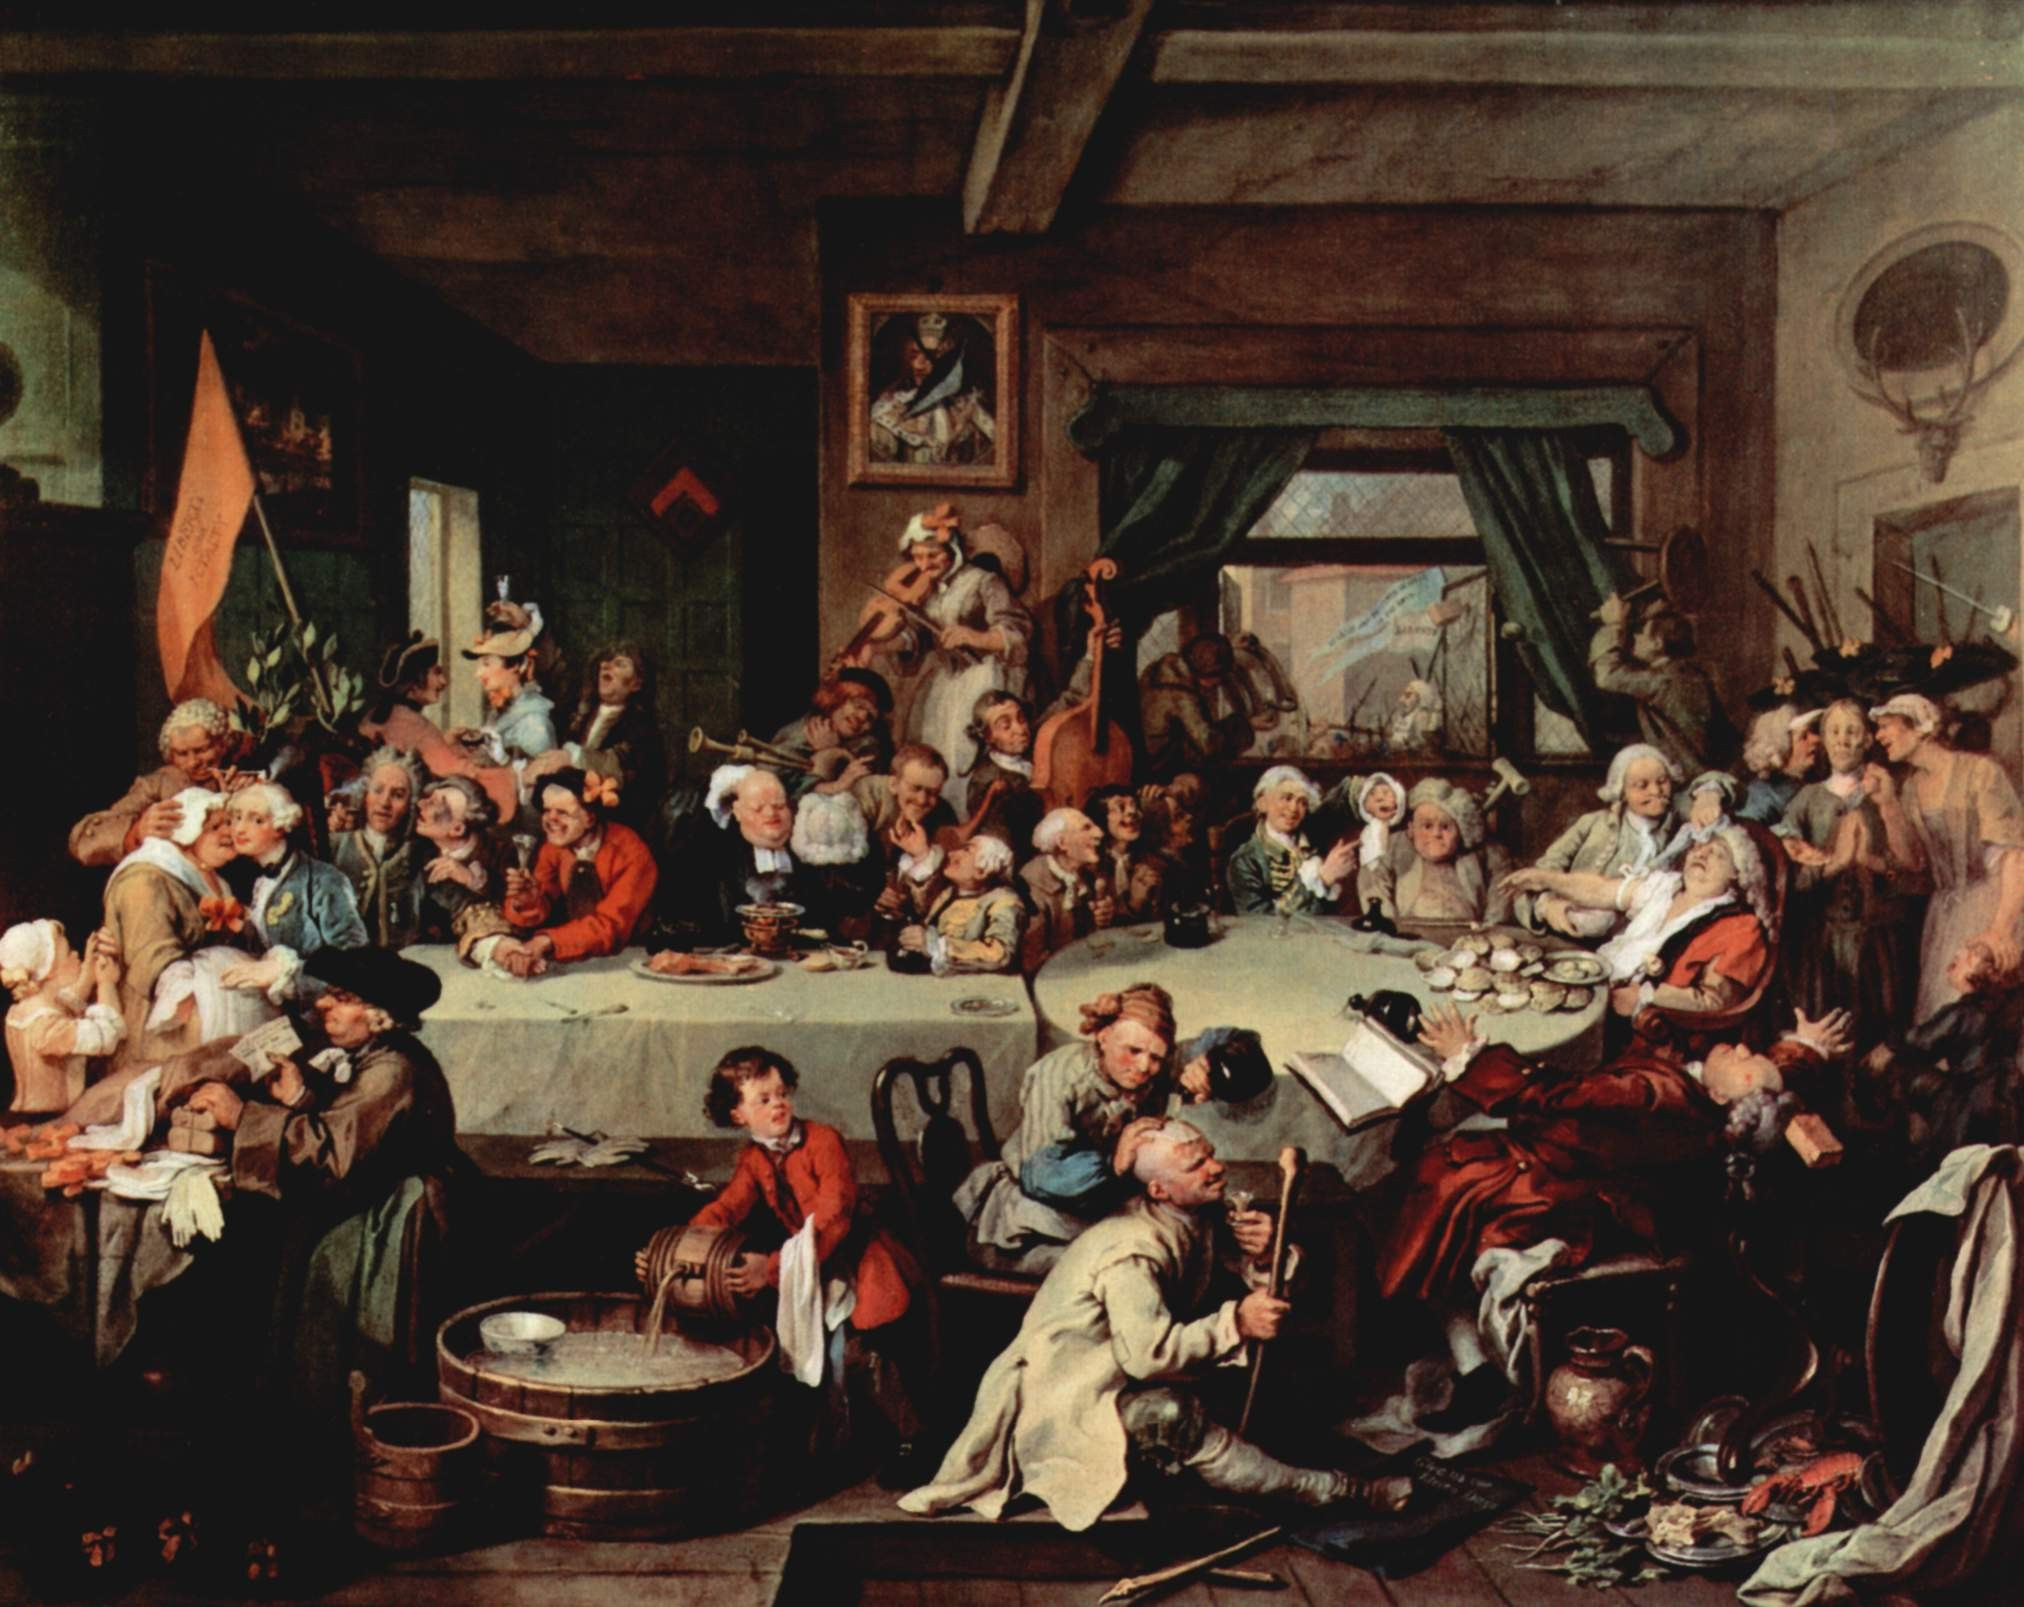 """One of William Hogarth's """"Humours of an Election"""" satirical paintings of 1755 shows a """"Give us our Eleven Days"""" banner (on floor) protesting against the 1752 switch to the Gregorian calendar. - THE YORCK PROJECT, PUBLIC DOMAIN"""